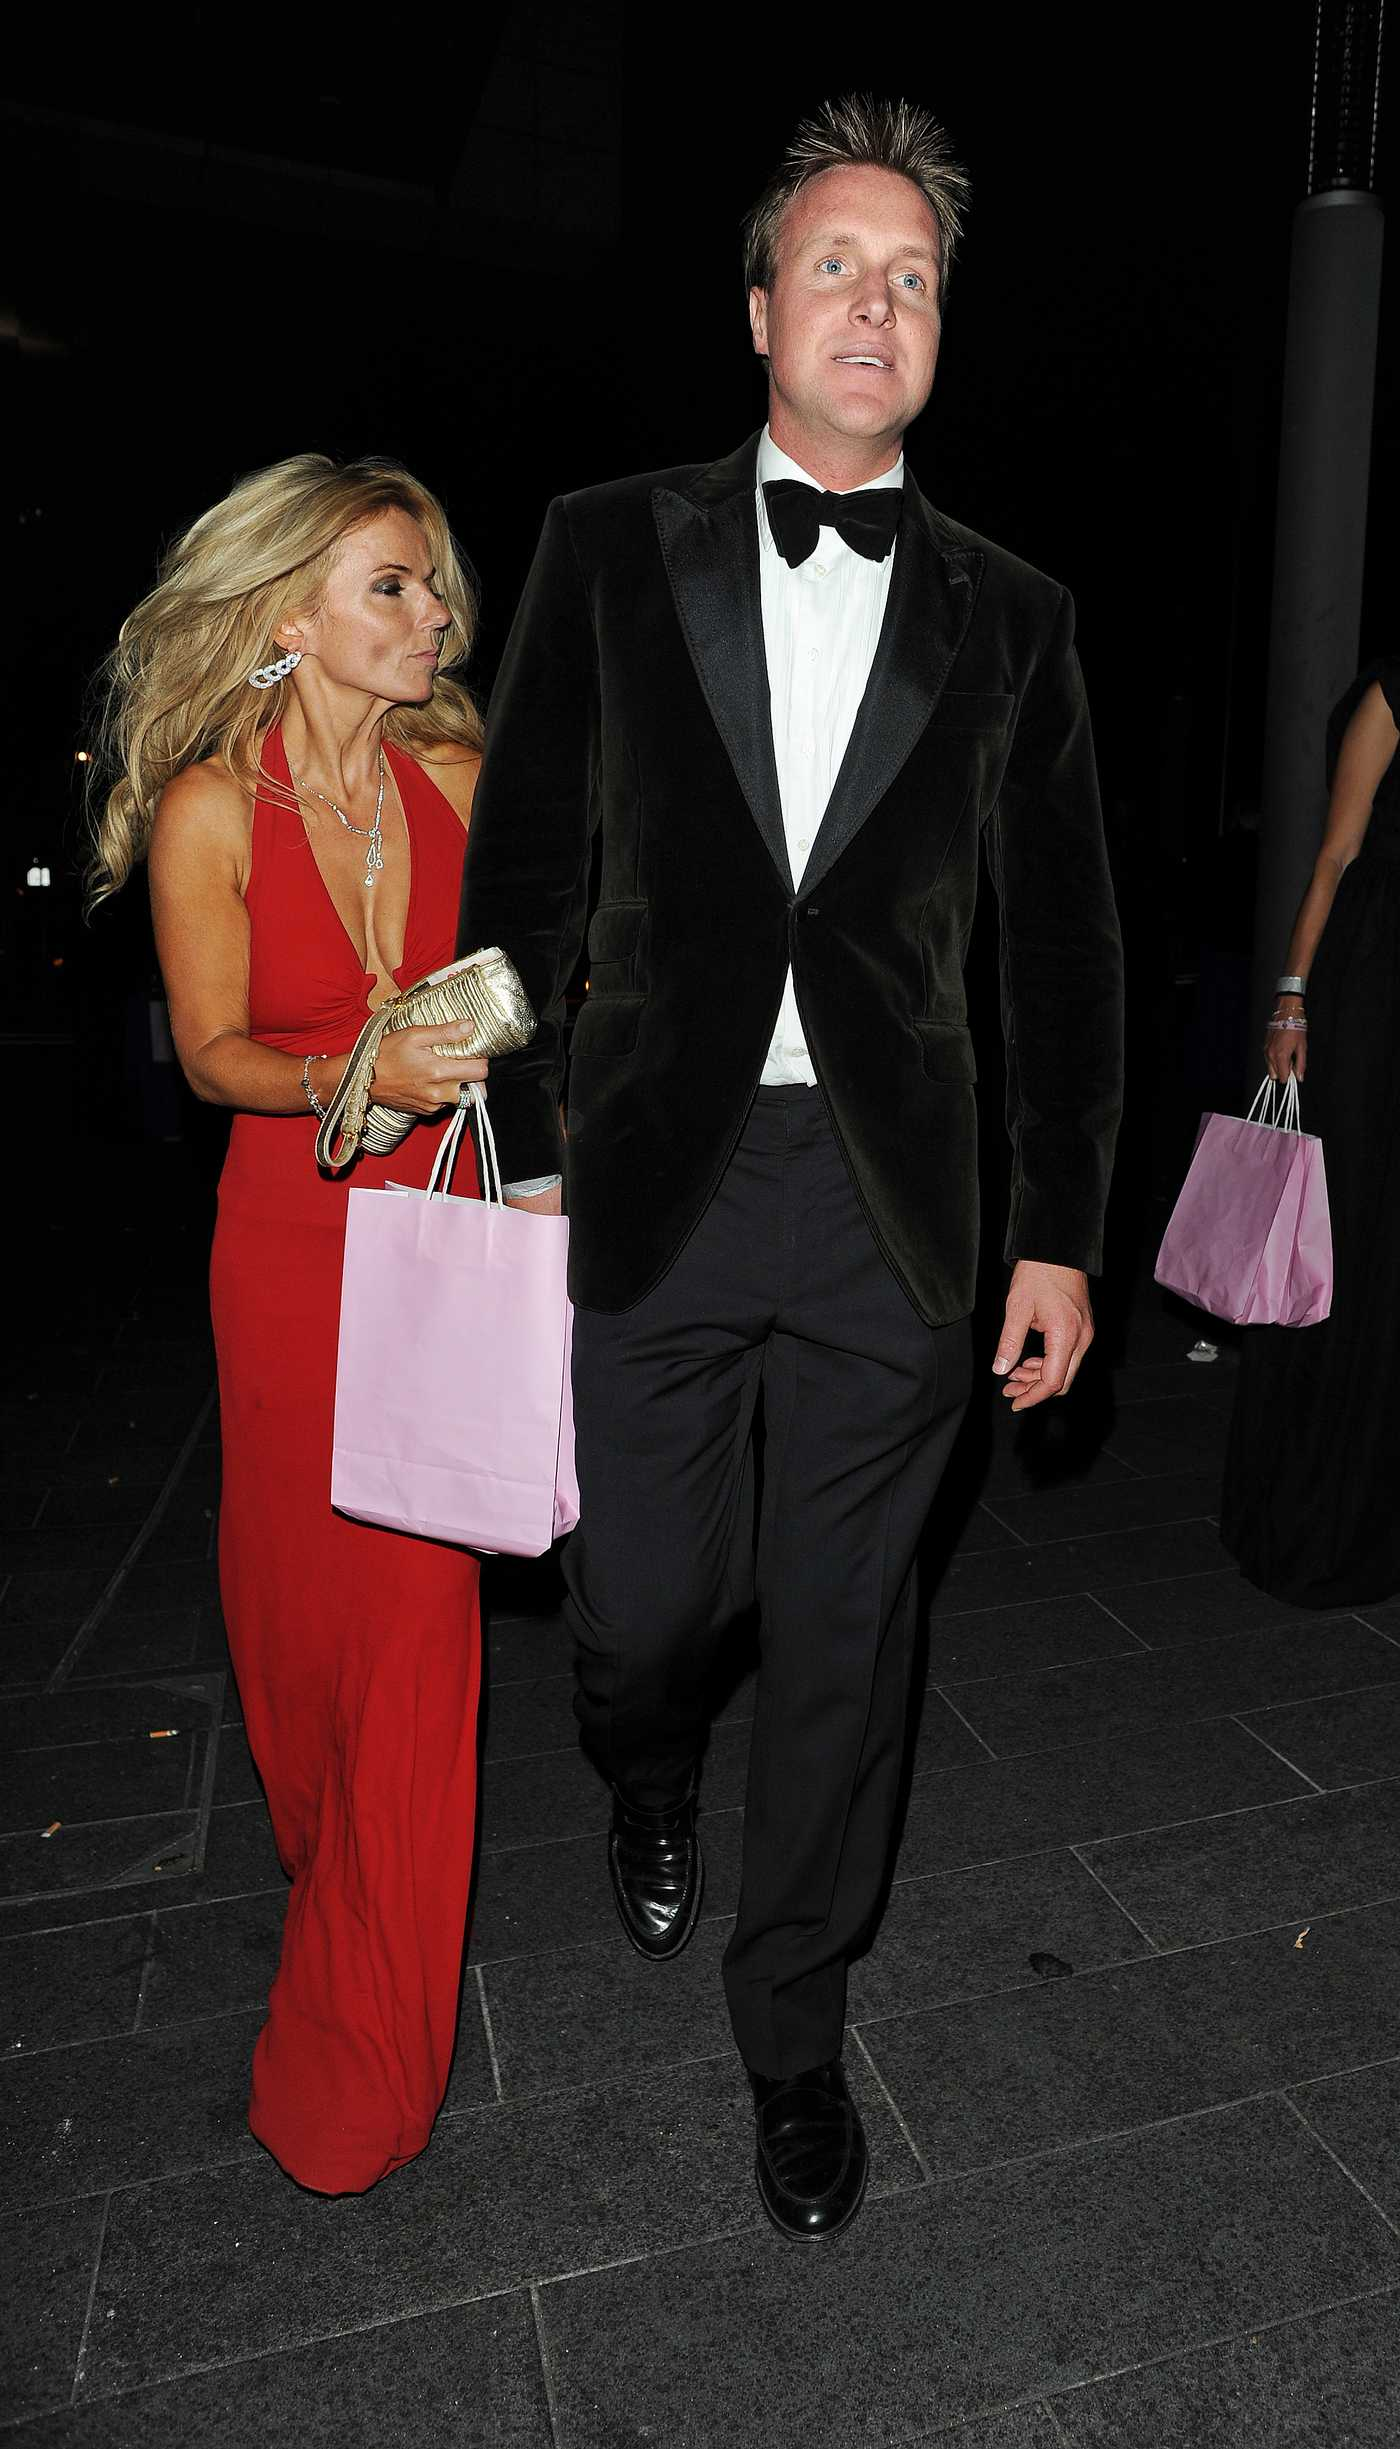 Geri Halliwell Tight Red Dress Candids at Boodles Boxing Ball in London